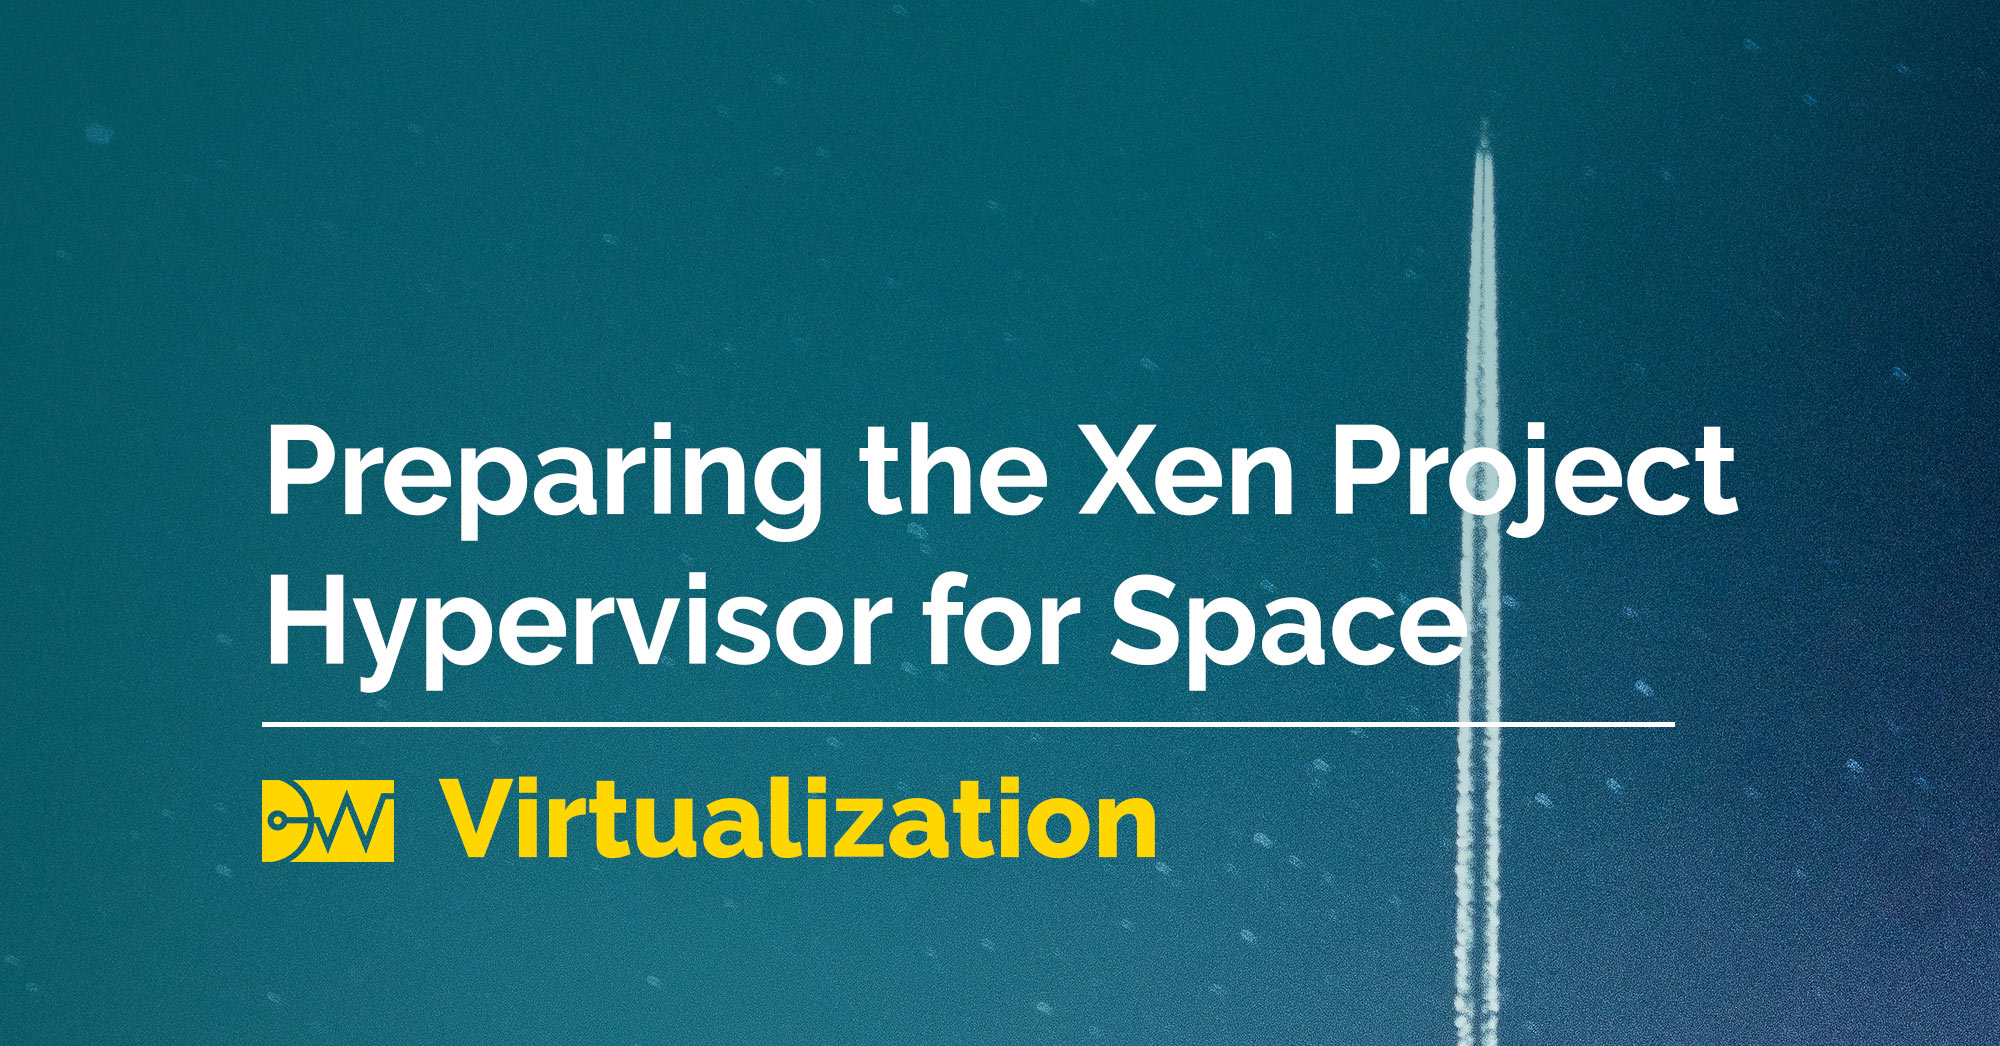 Xen Project Hypervisor Headed for Space as DornerWorks